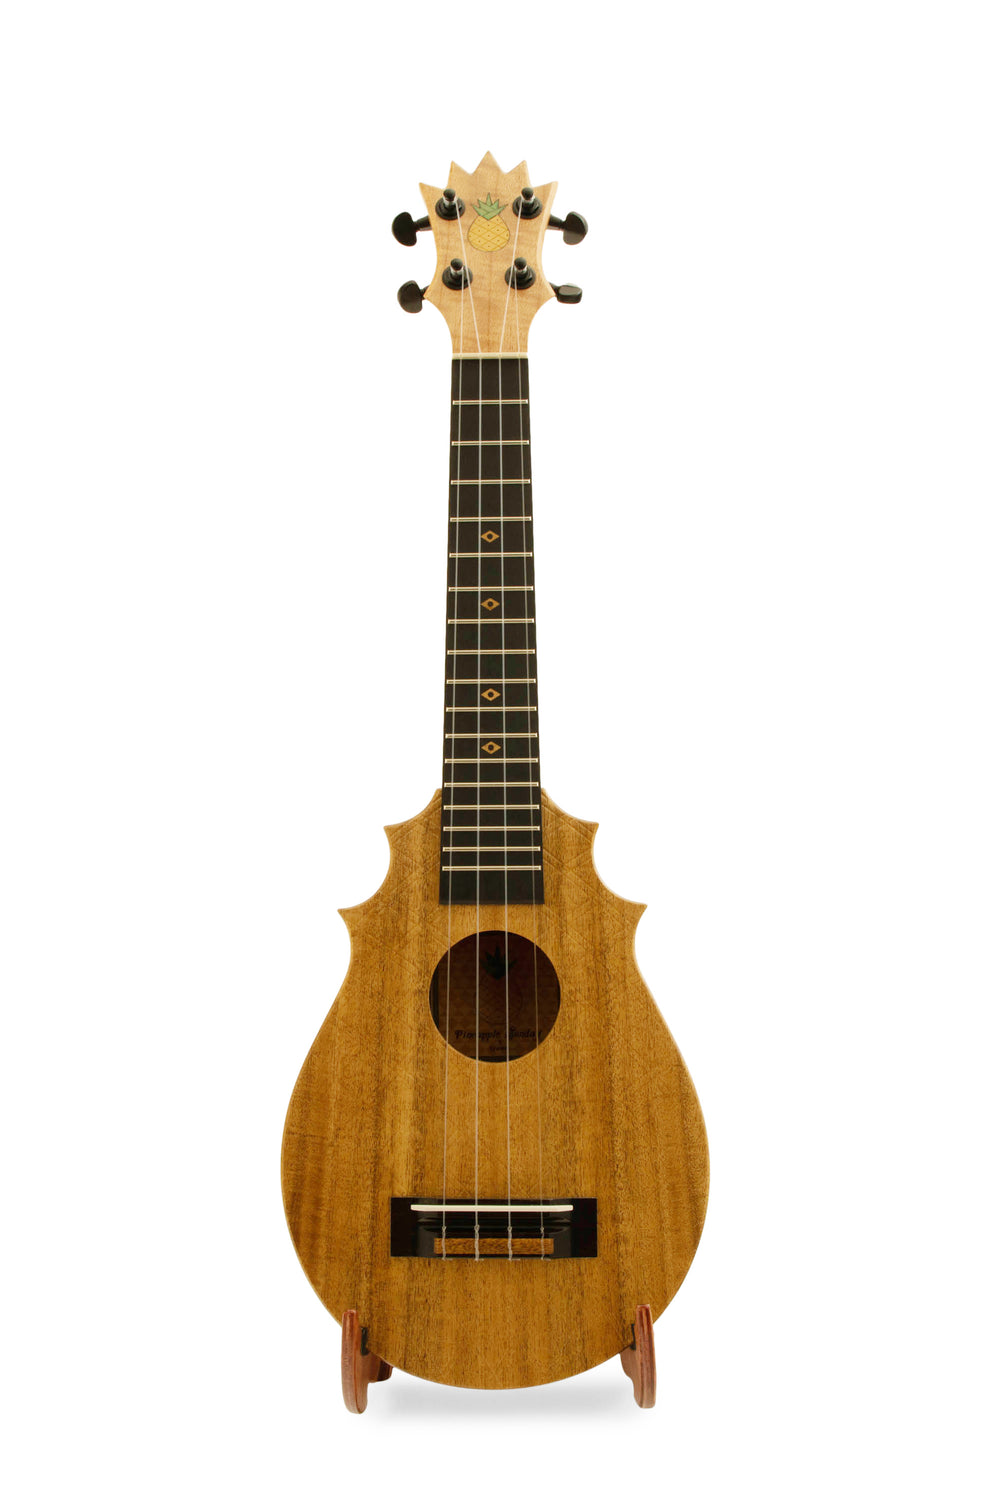 "UkeSA Pineapple Sunday Opio Concert Ukulele Solid Acacia ""Magnus"" by Pops KoAloha (DISCOUNTED $387)"